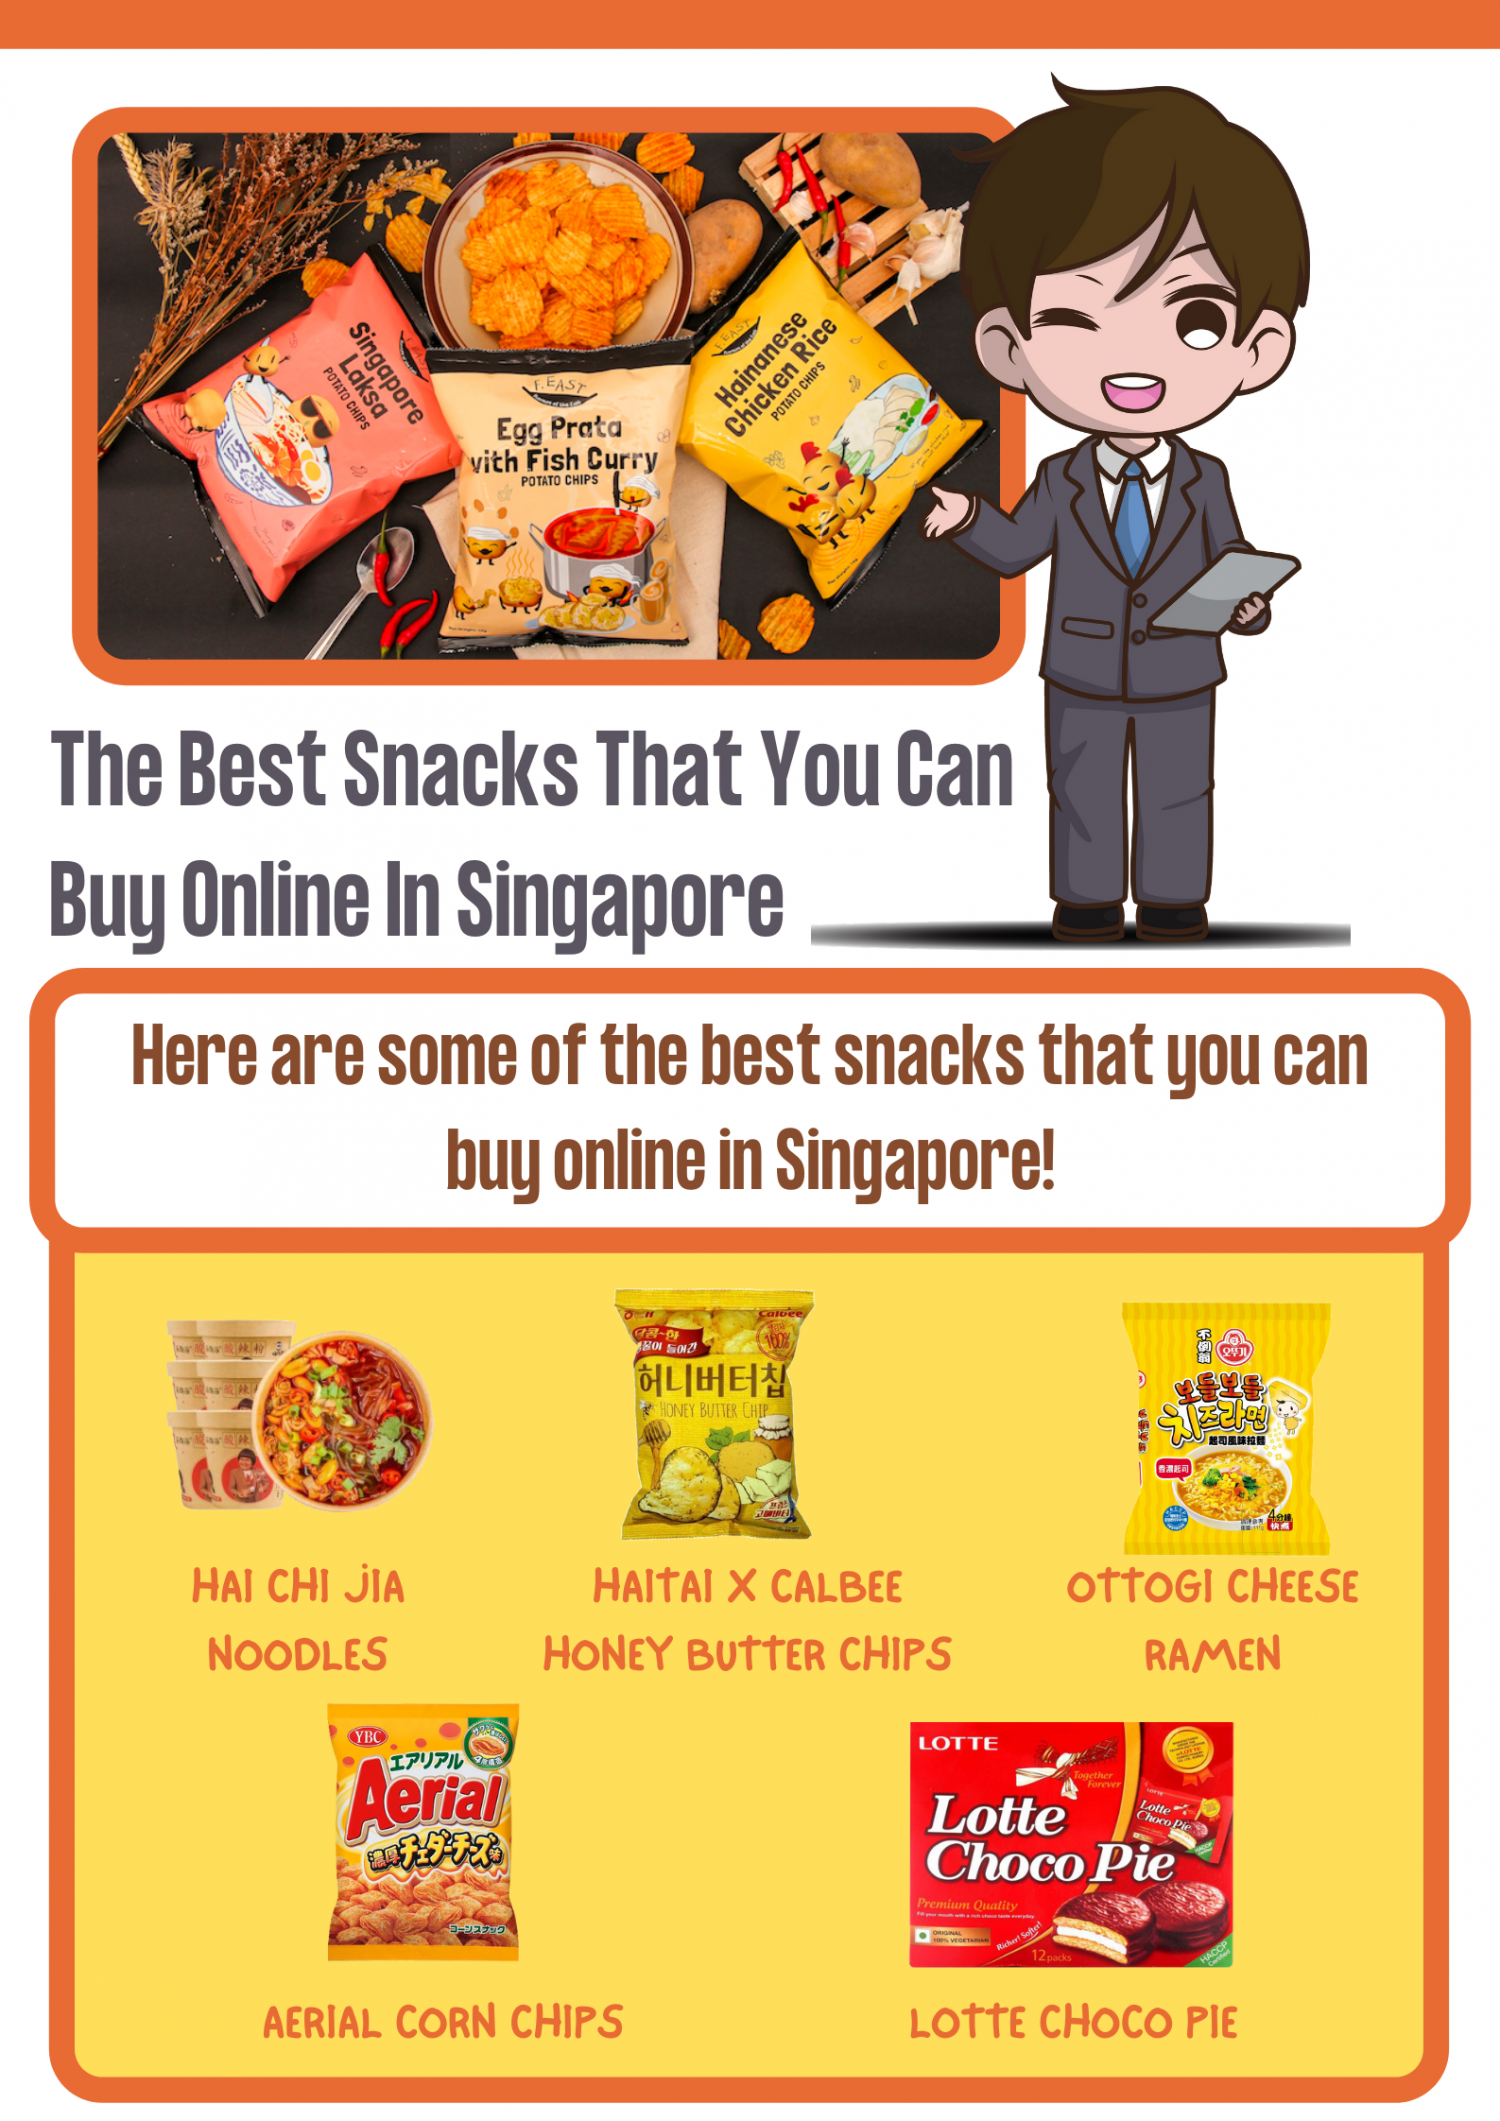 The Best Snacks That You Can Buy Online In Singapore Infographic